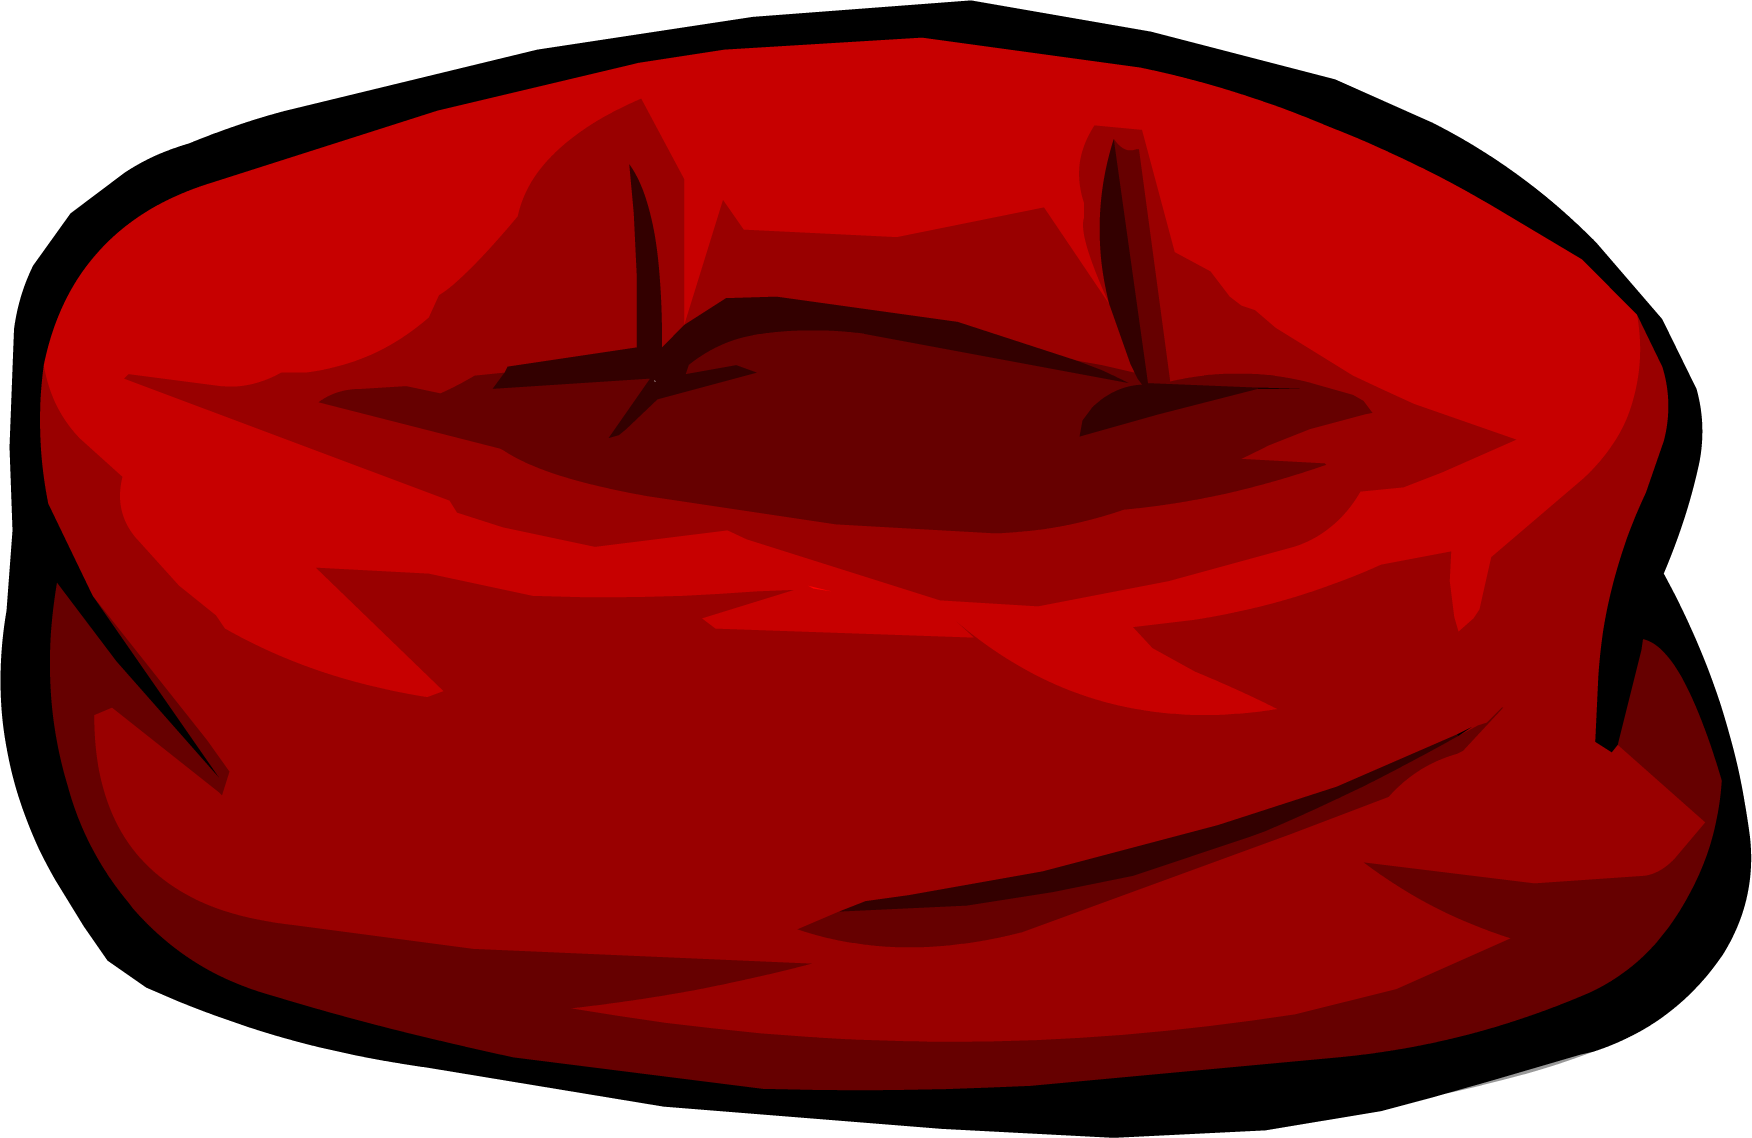 Image Red Bean Bag Chair Png Club Penguin Wiki The